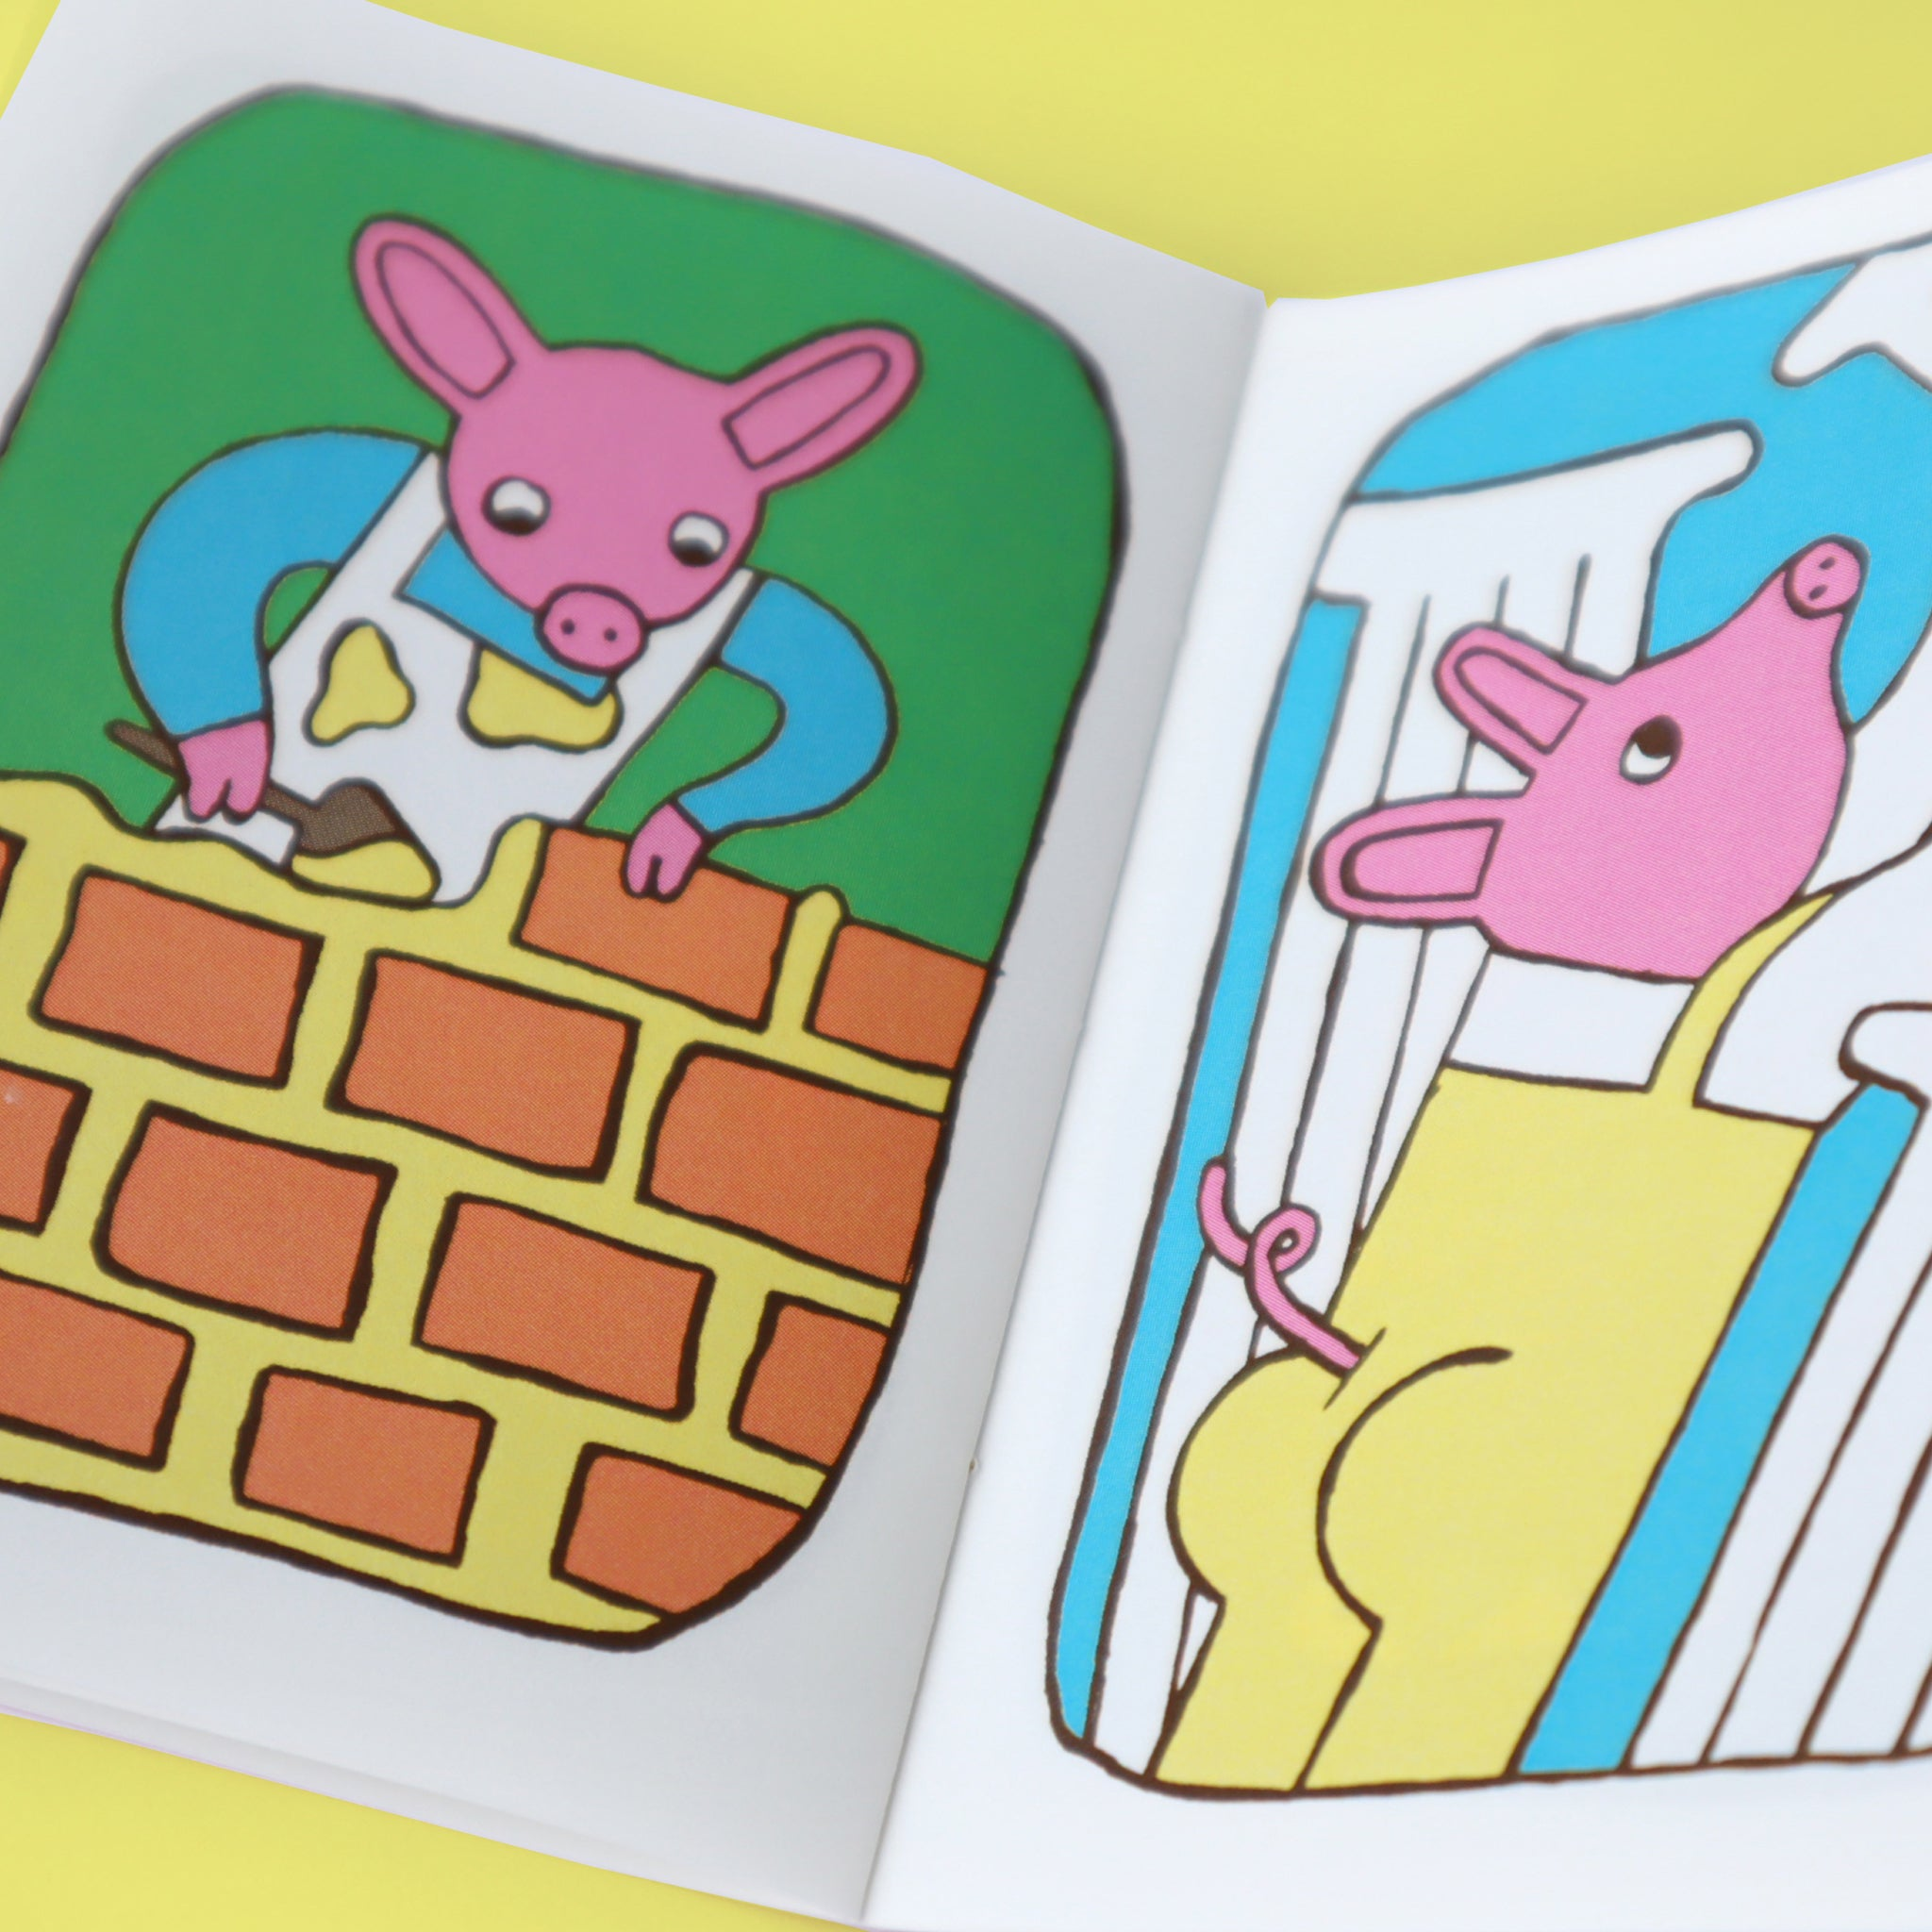 three little pigs fairytale book page